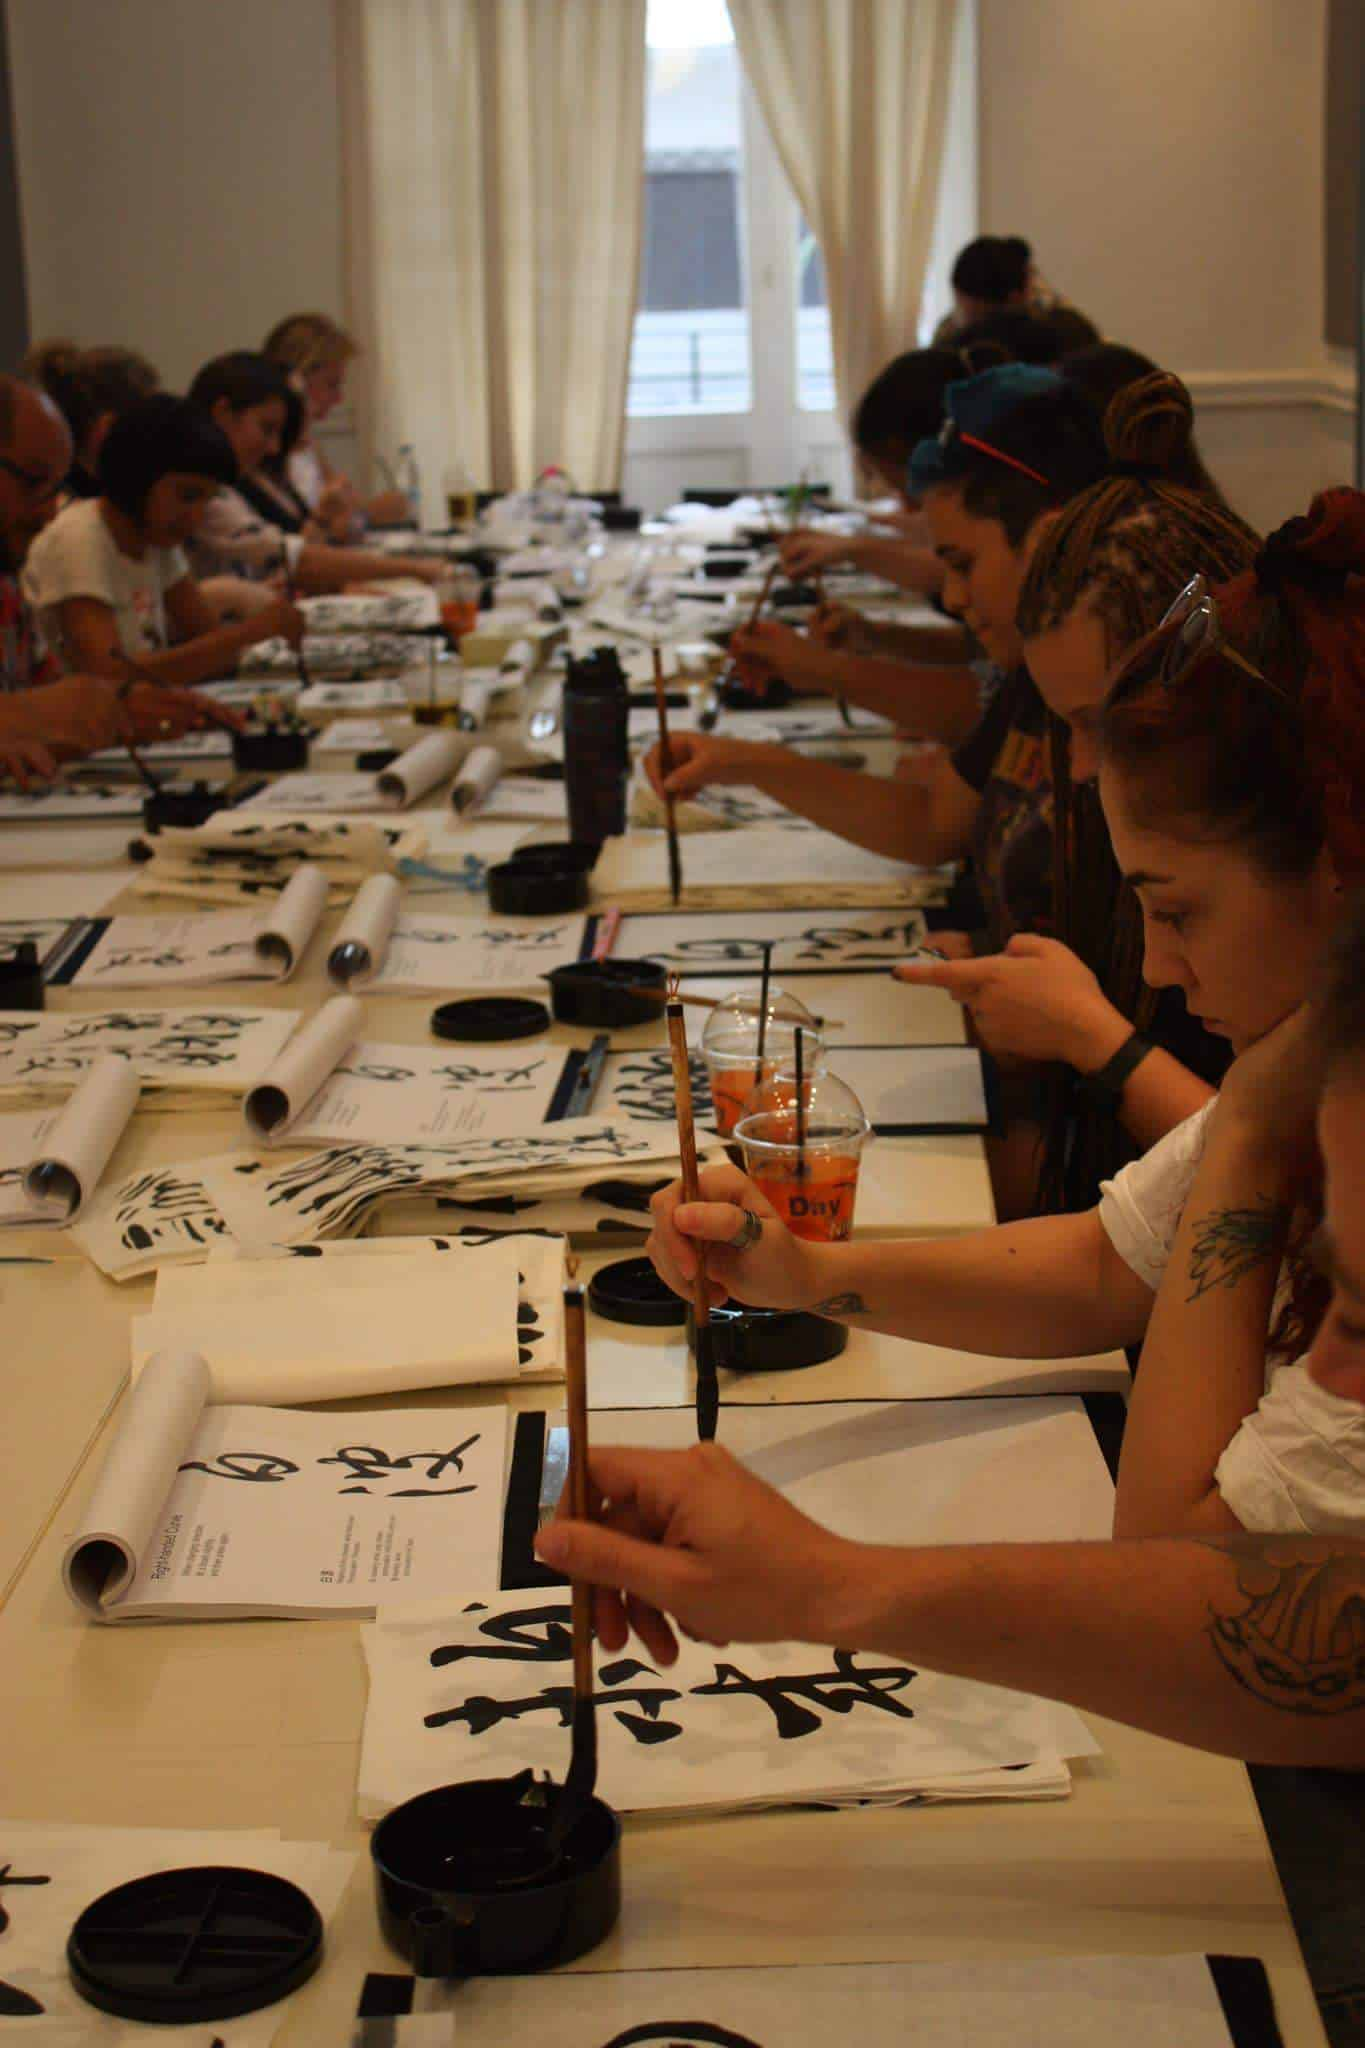 14500205 10210644690981295 6614427670625452791 o - Calligraphy workshop in Greece